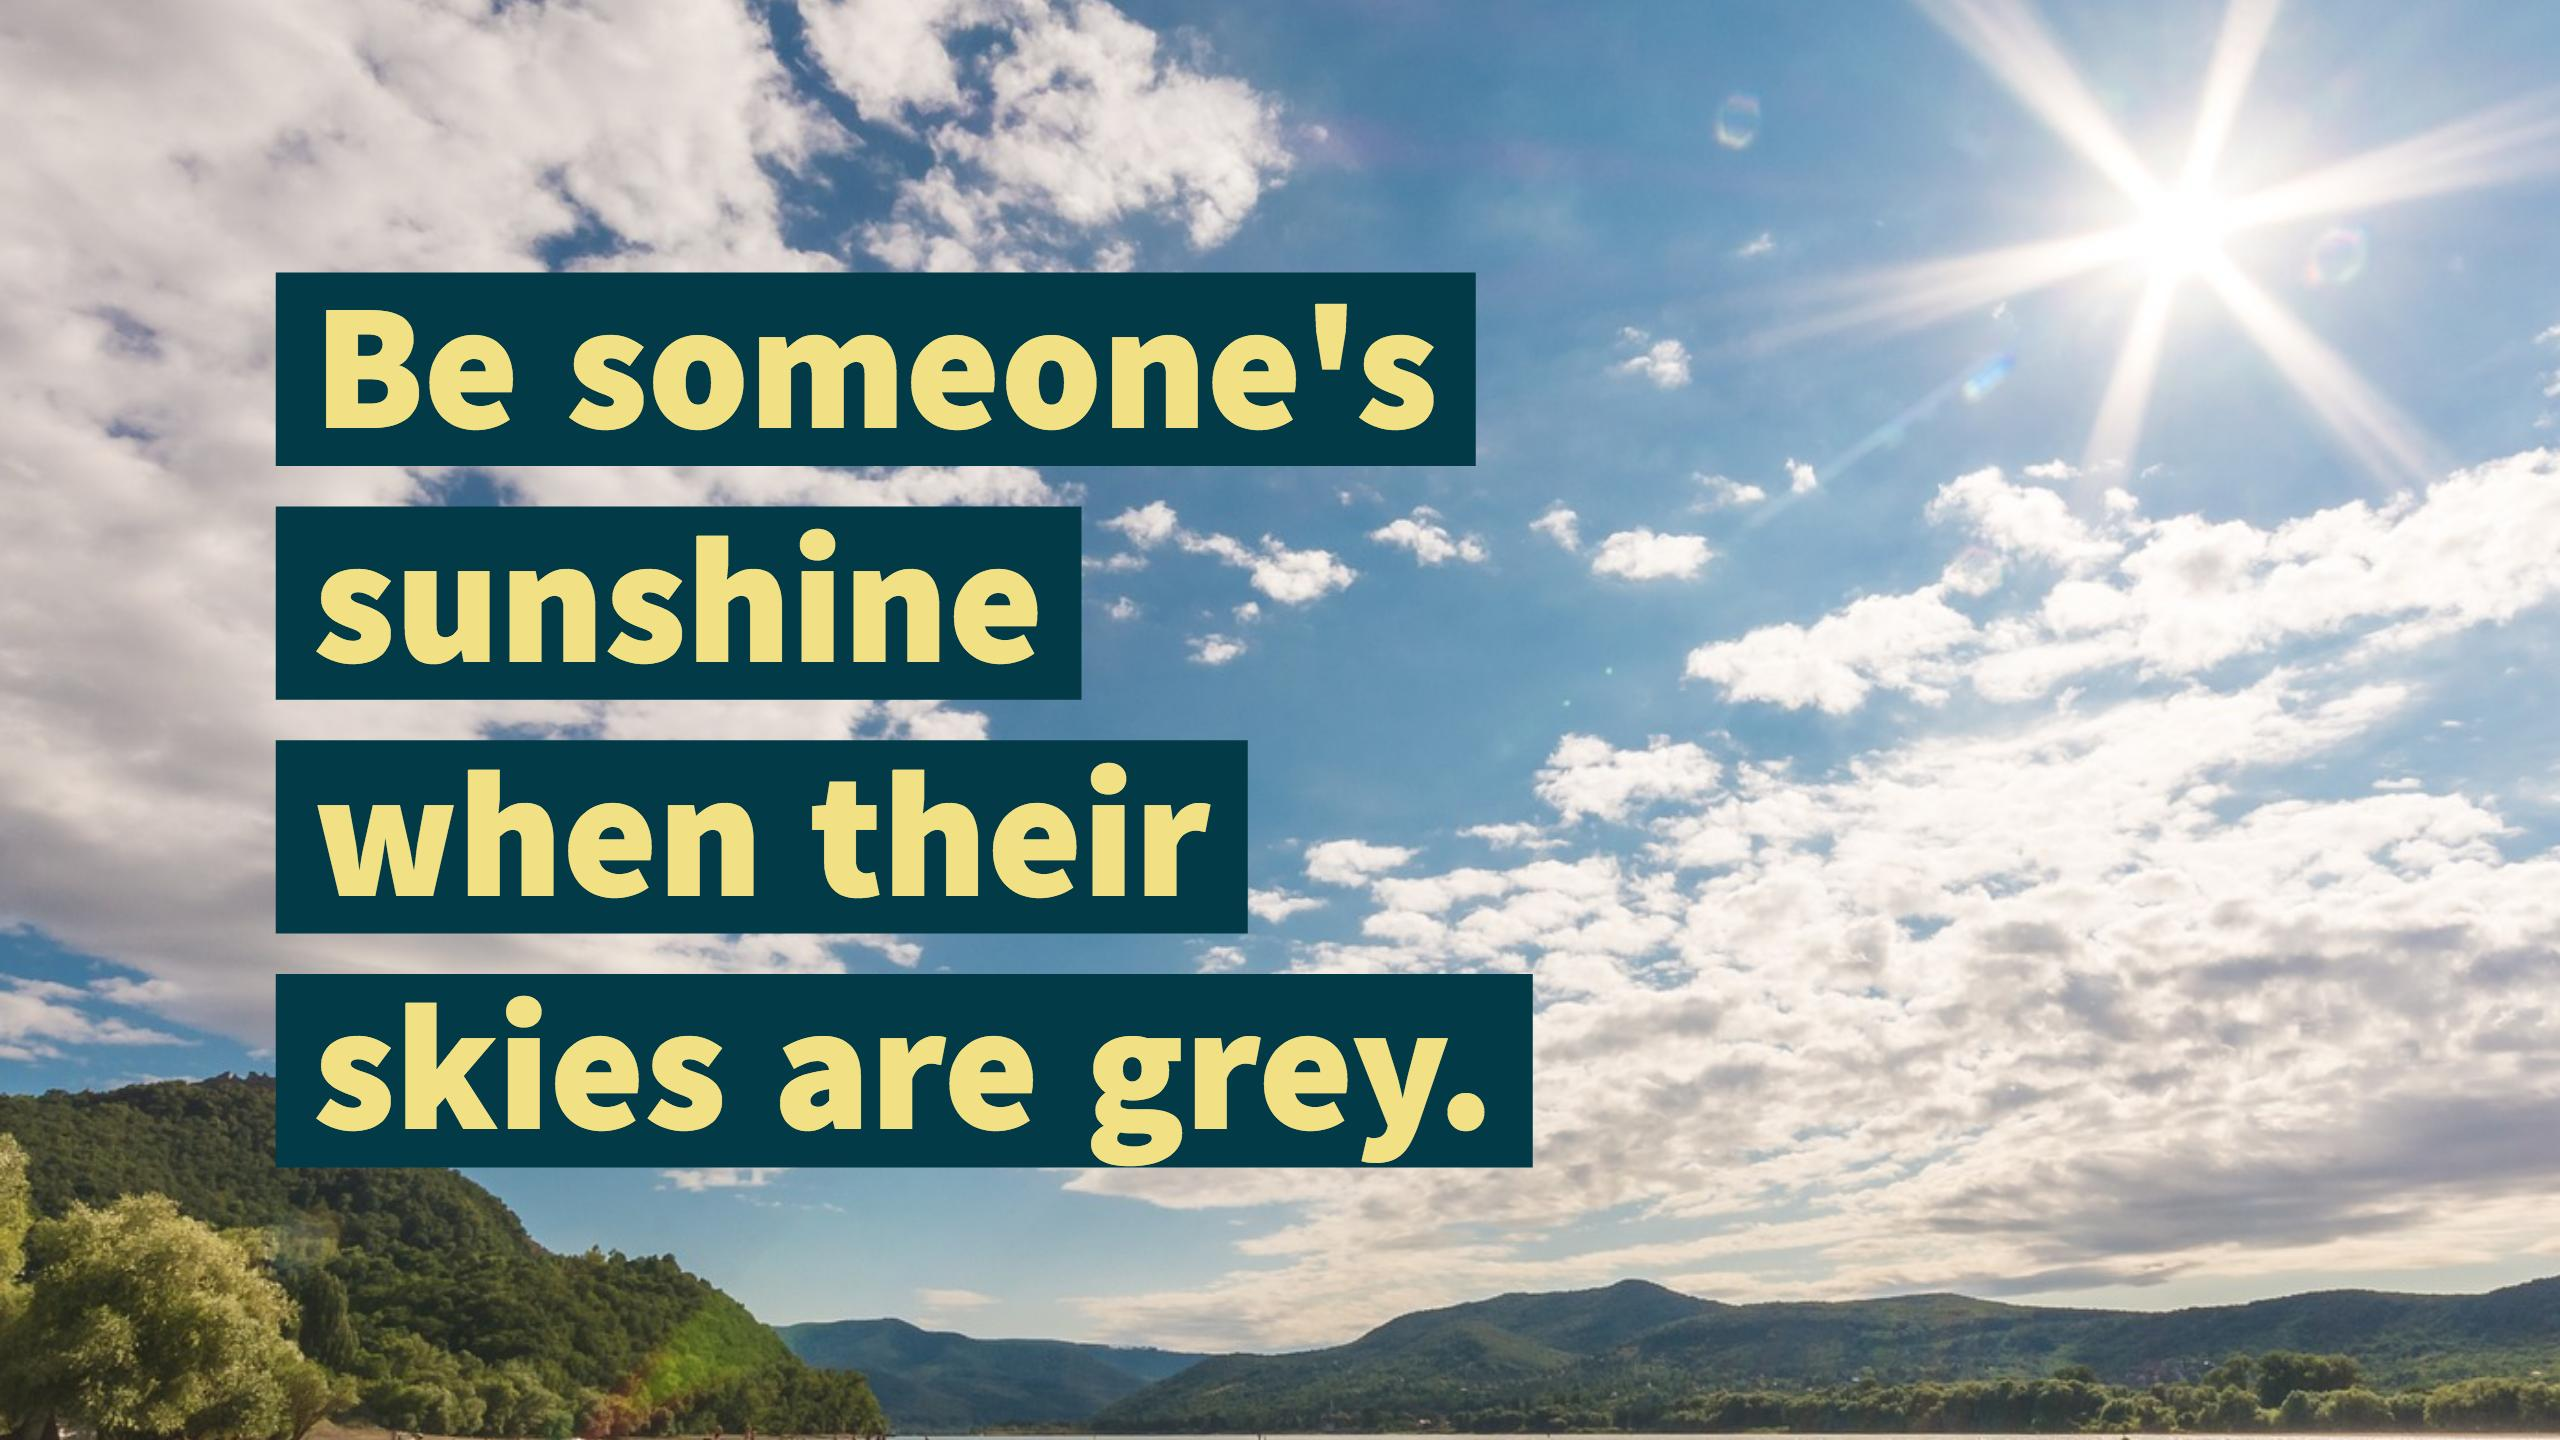 Be someone's sunshine when their skies are grey.